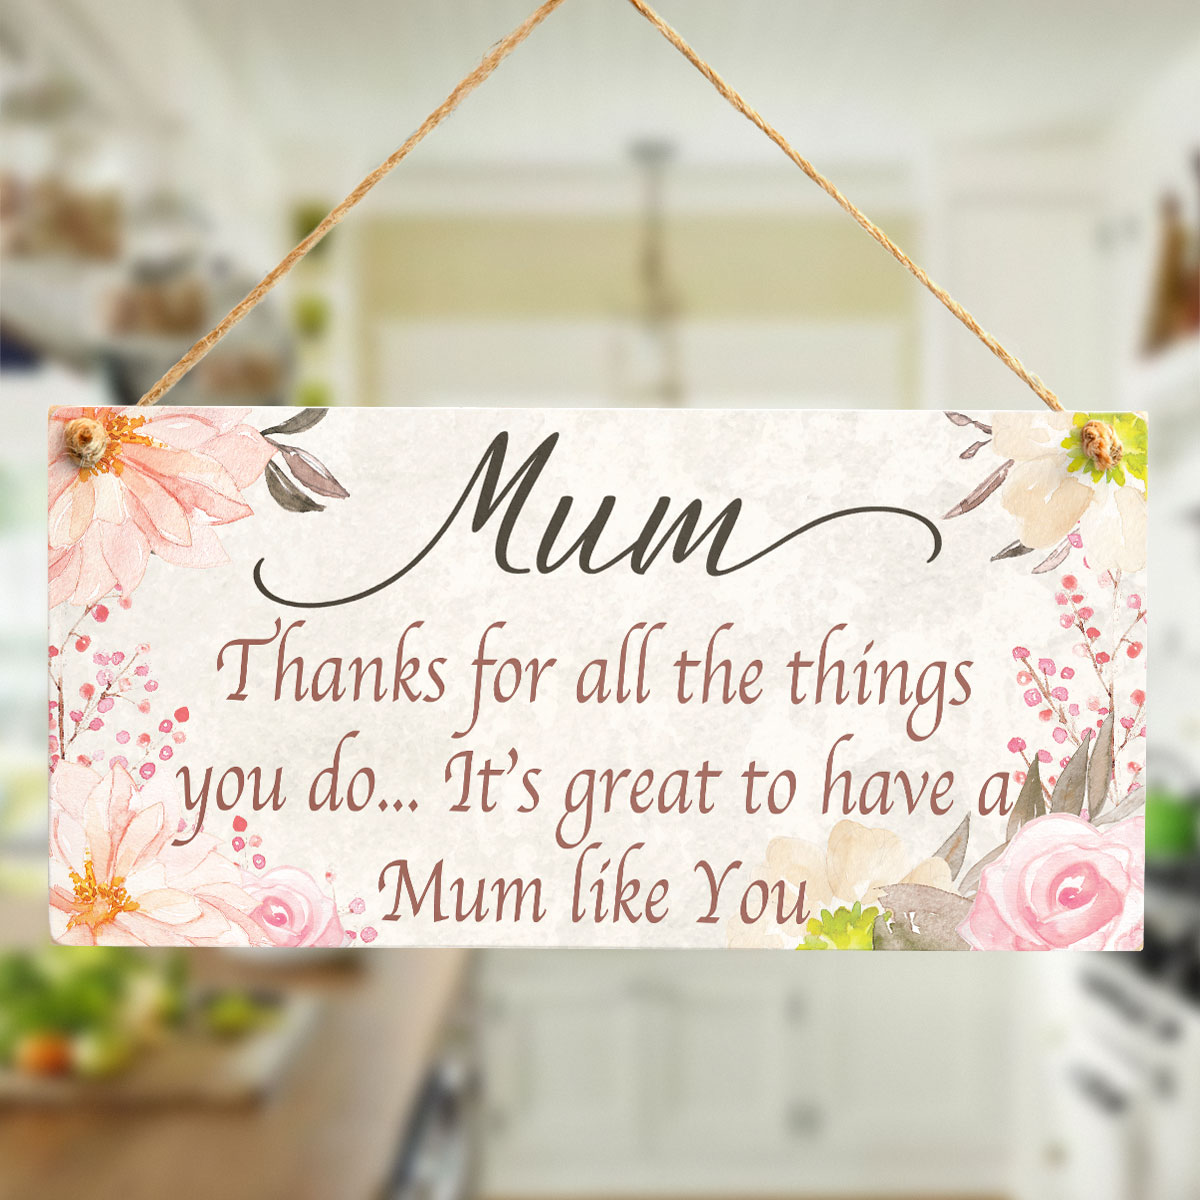 Mum thanks for all the things you do it 39 s great to have a Thanks for all you do gifts